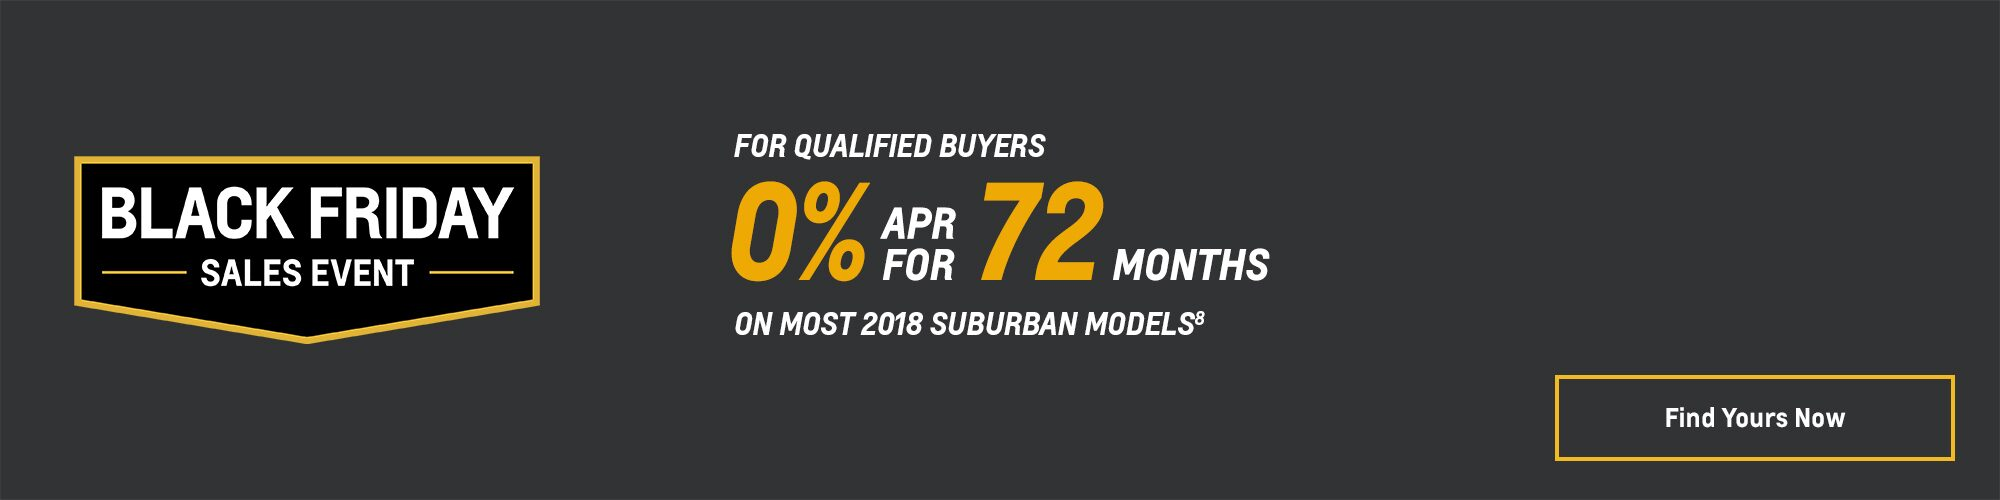 Black Friday Chevy Deals and Offers: 2018 Suburban 0% APR